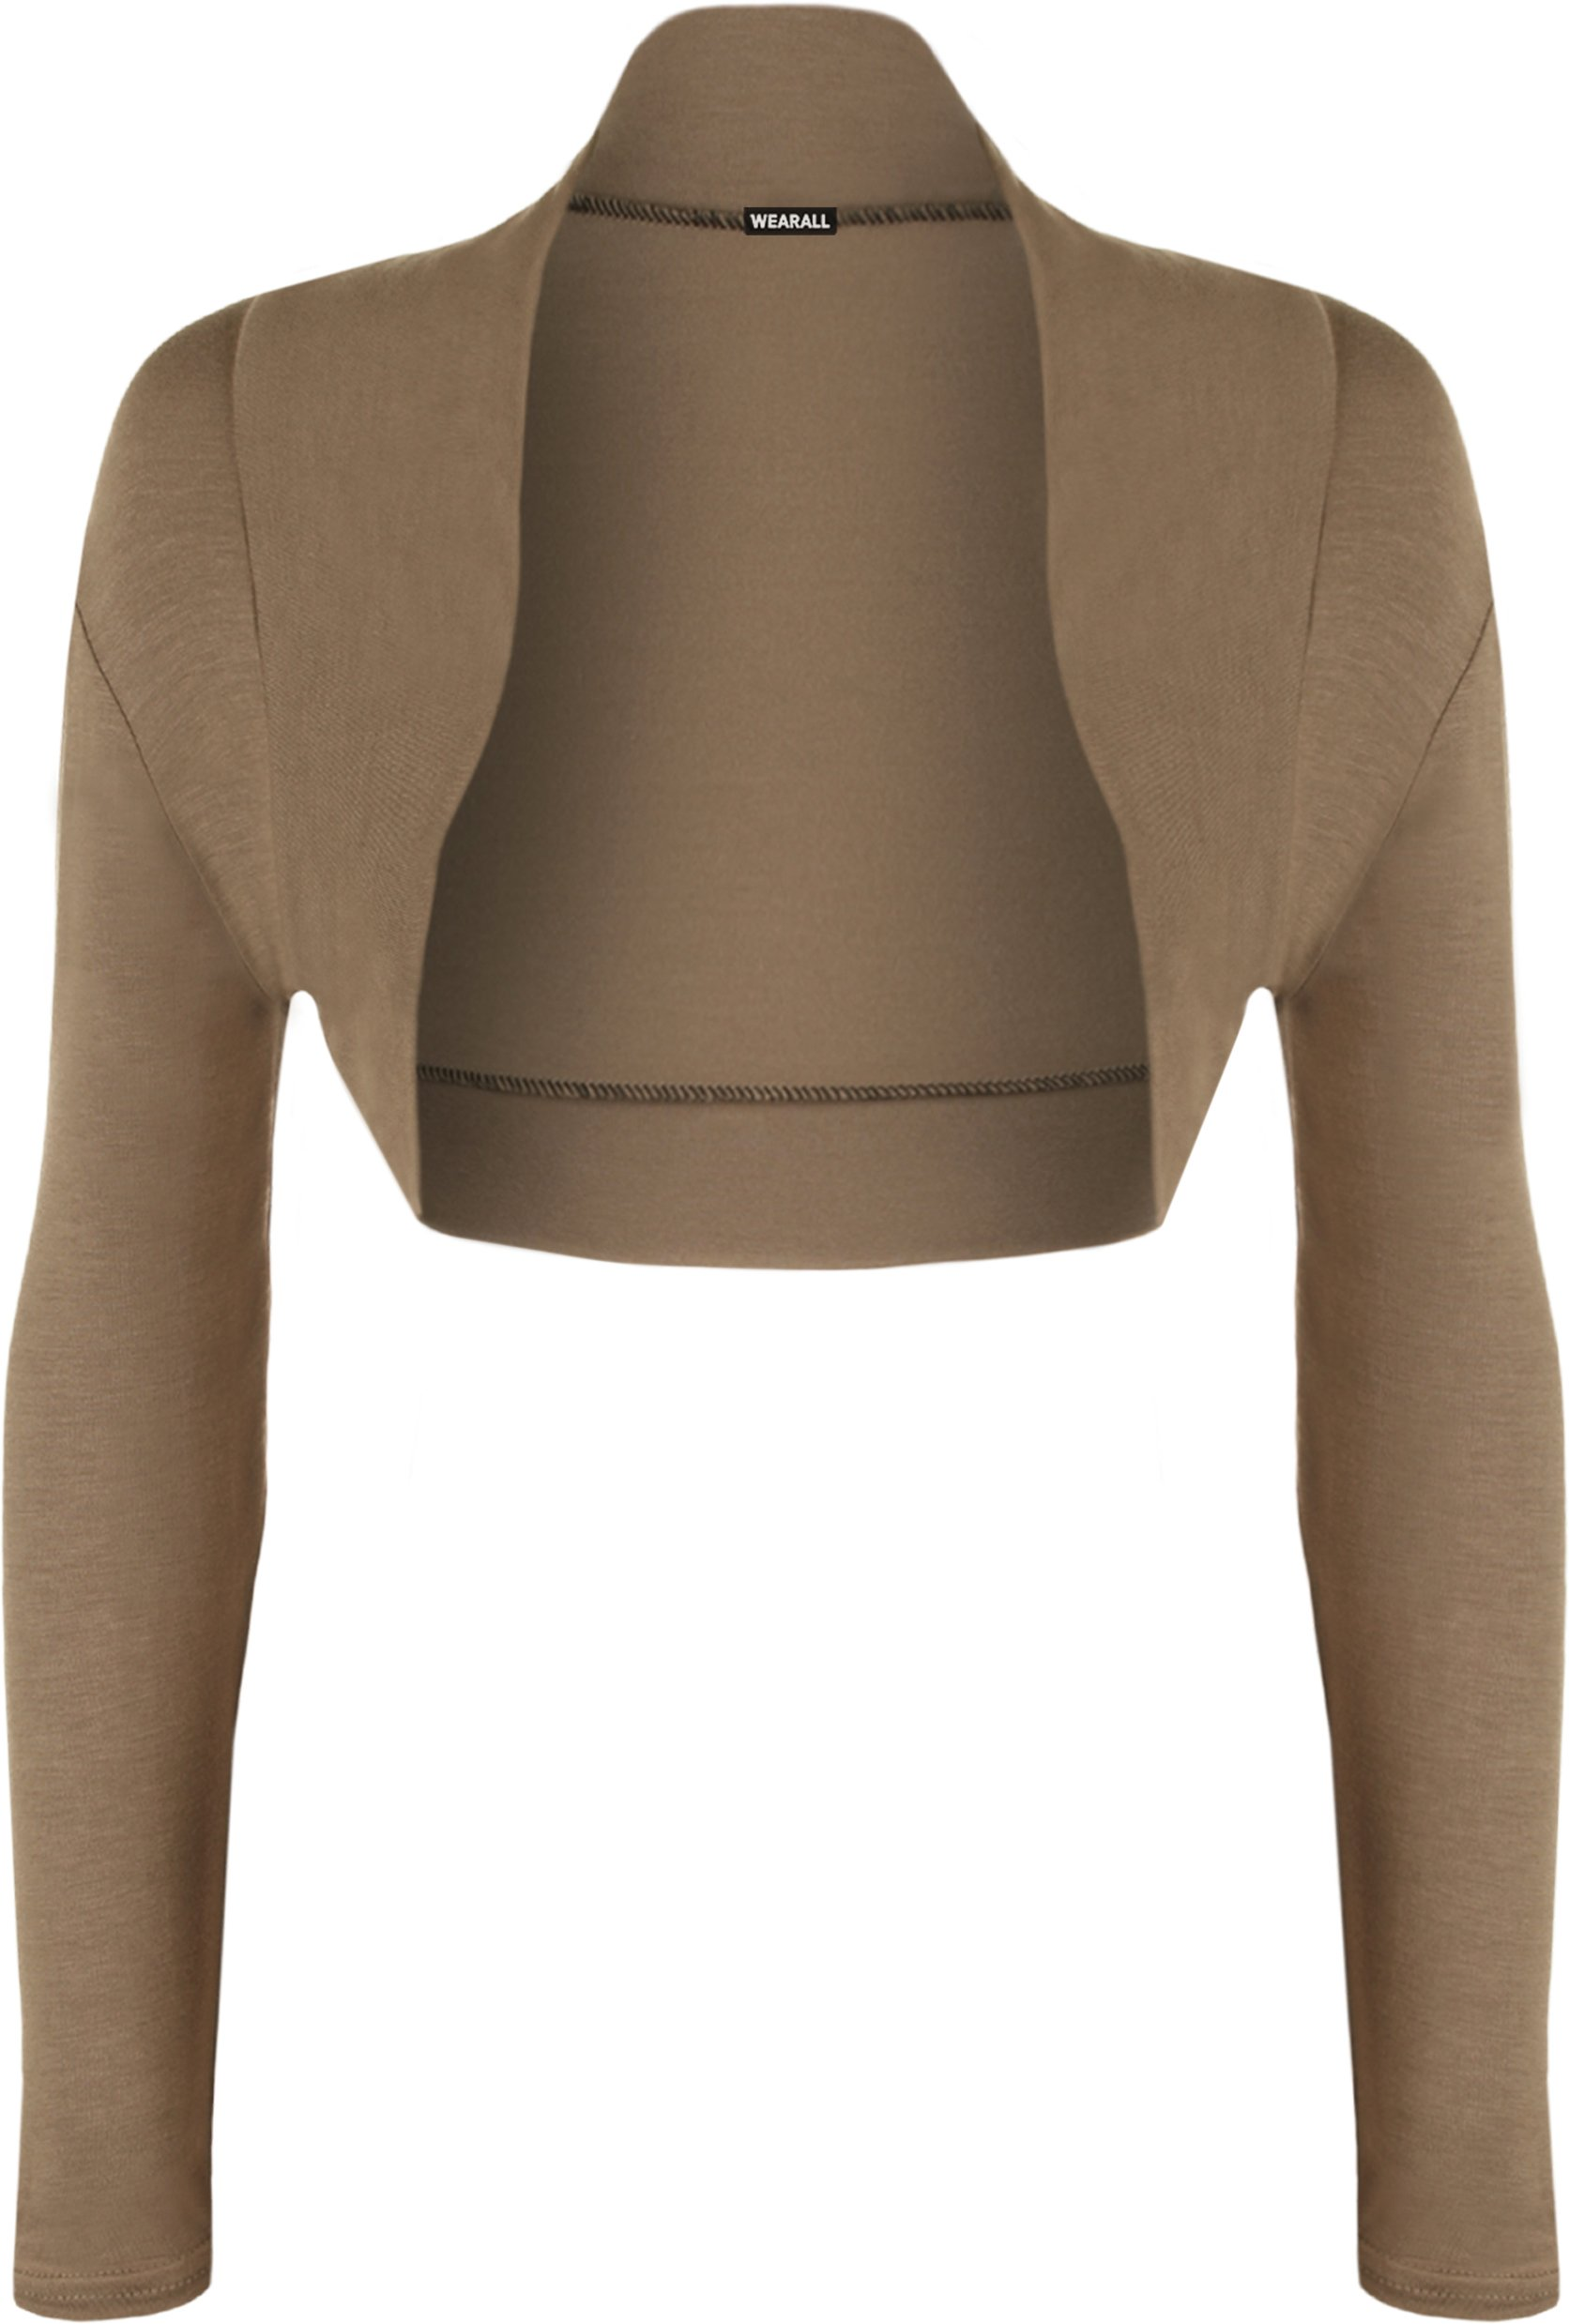 WearAll Womens Long Sleeve Shrug Bolero Cardigan - Mocha - US 8-10 (UK 12-14)